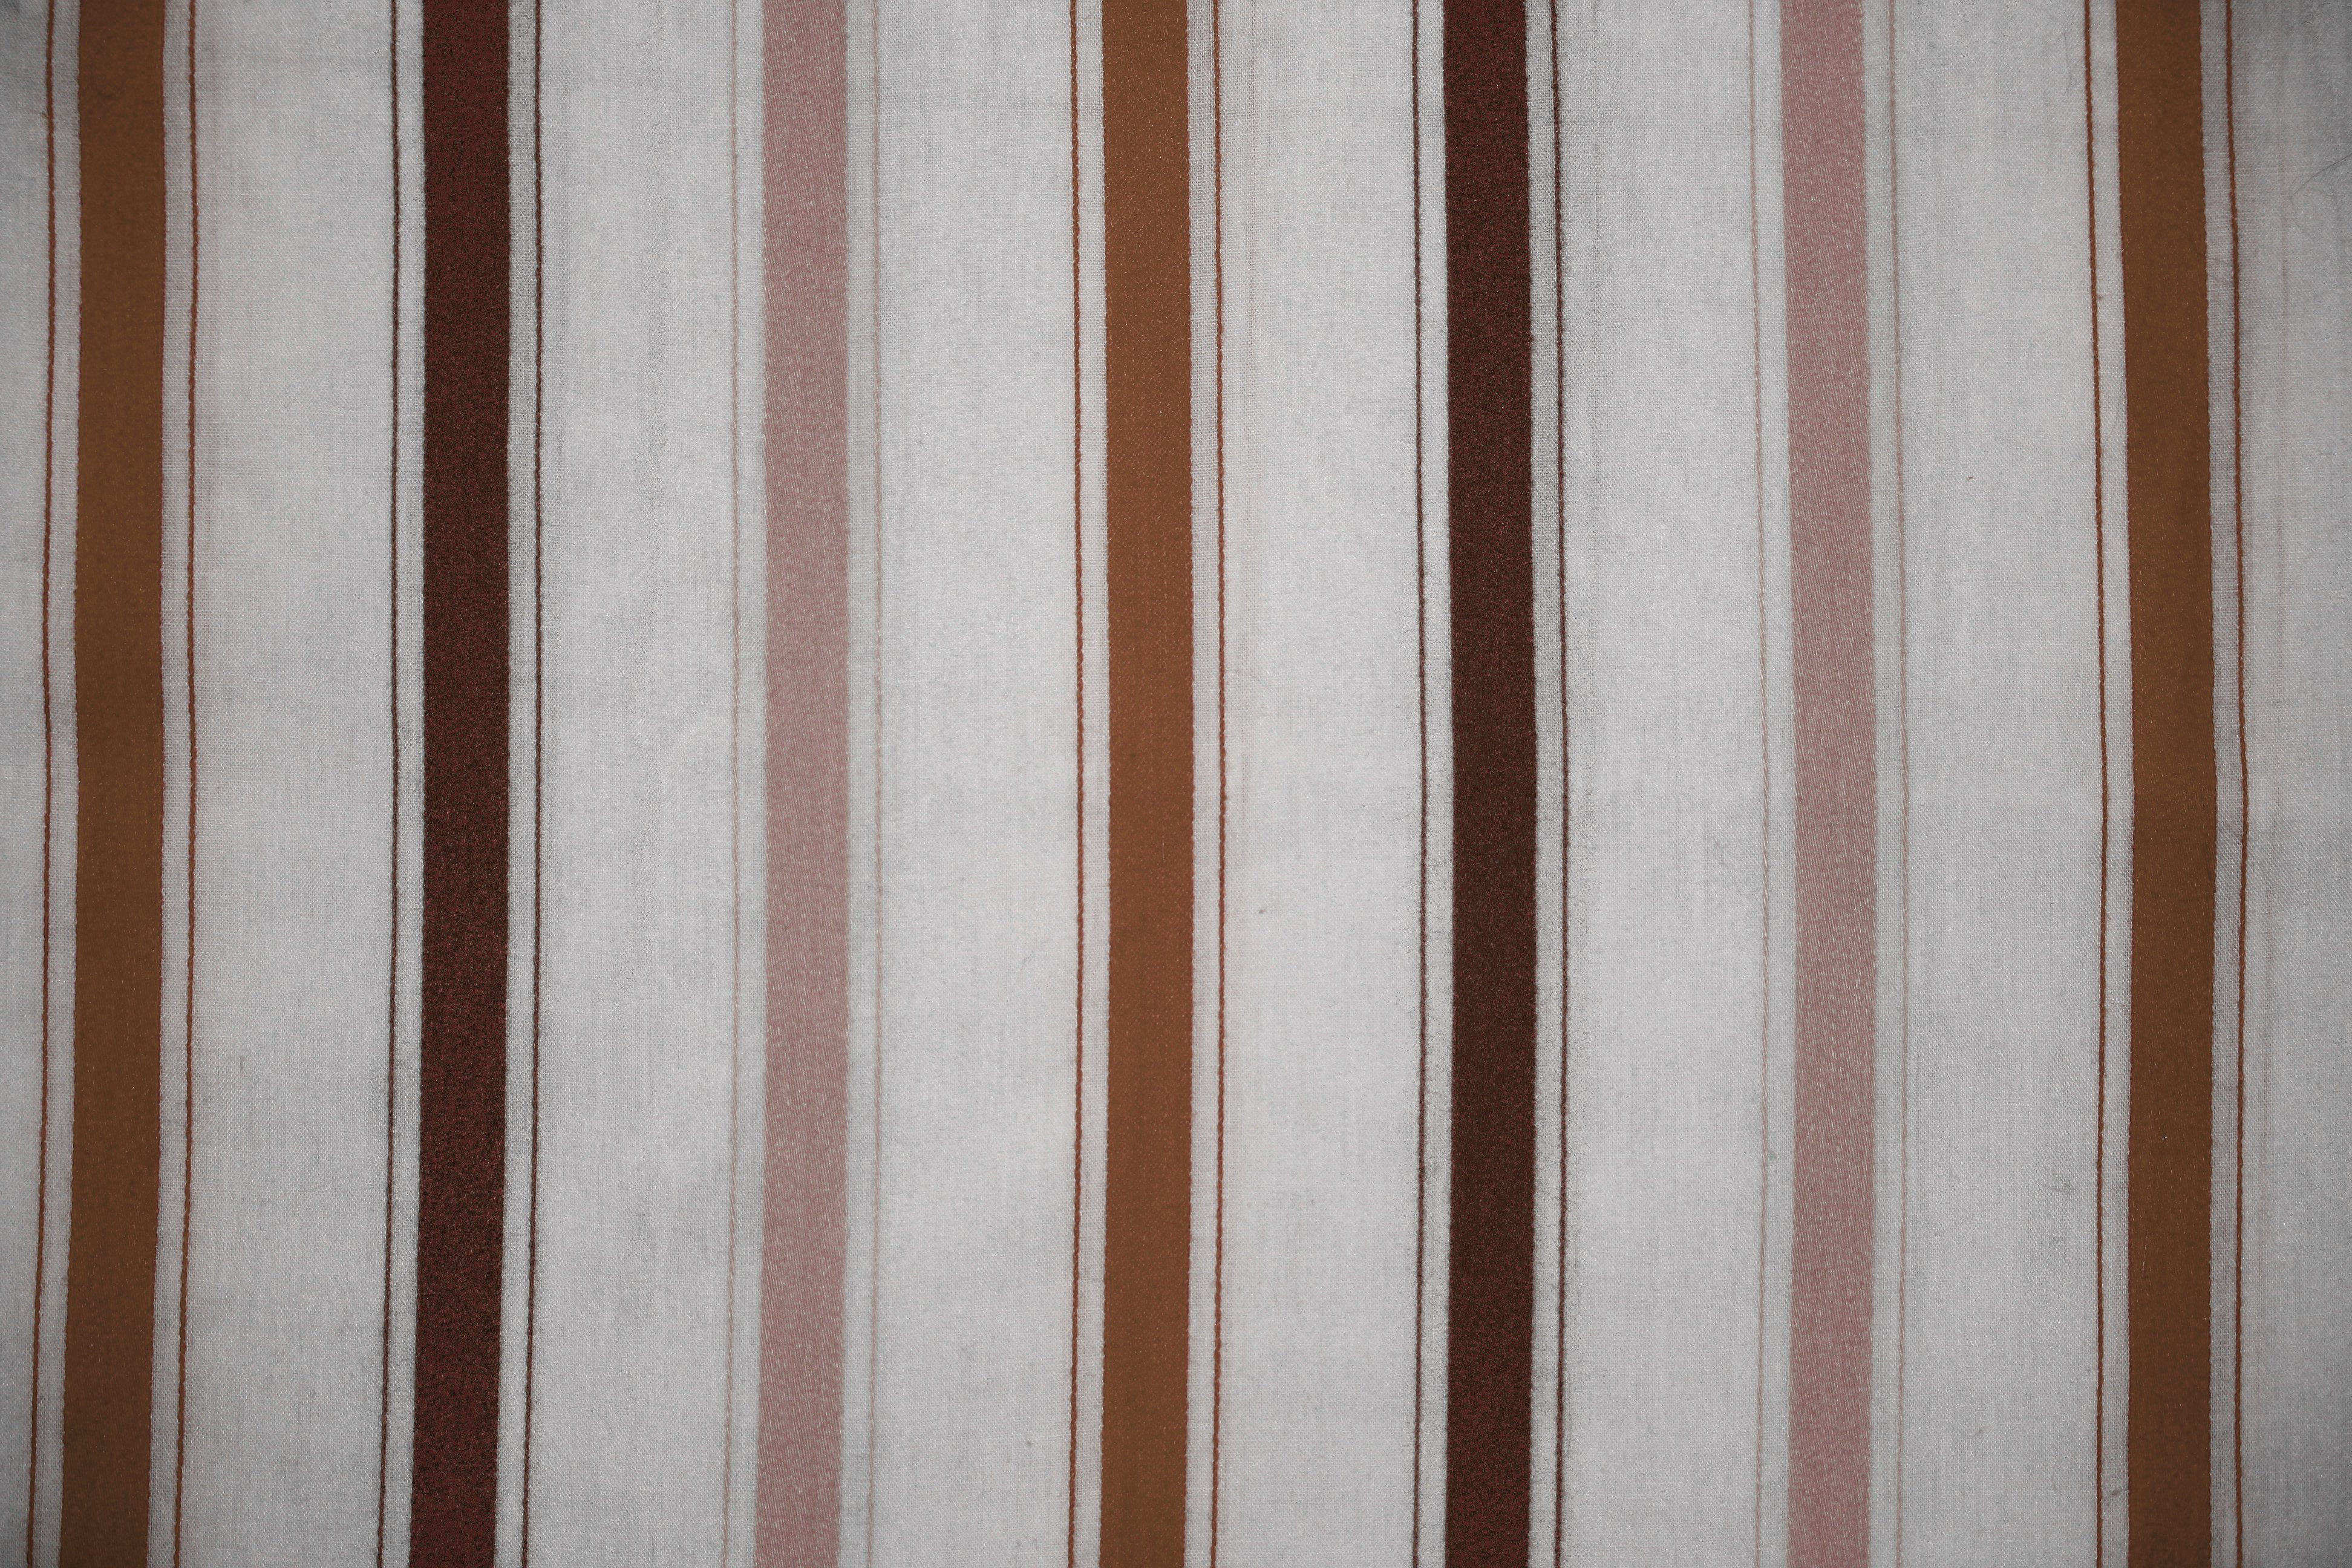 Striped Fabric Texture Brown On White Picture Free